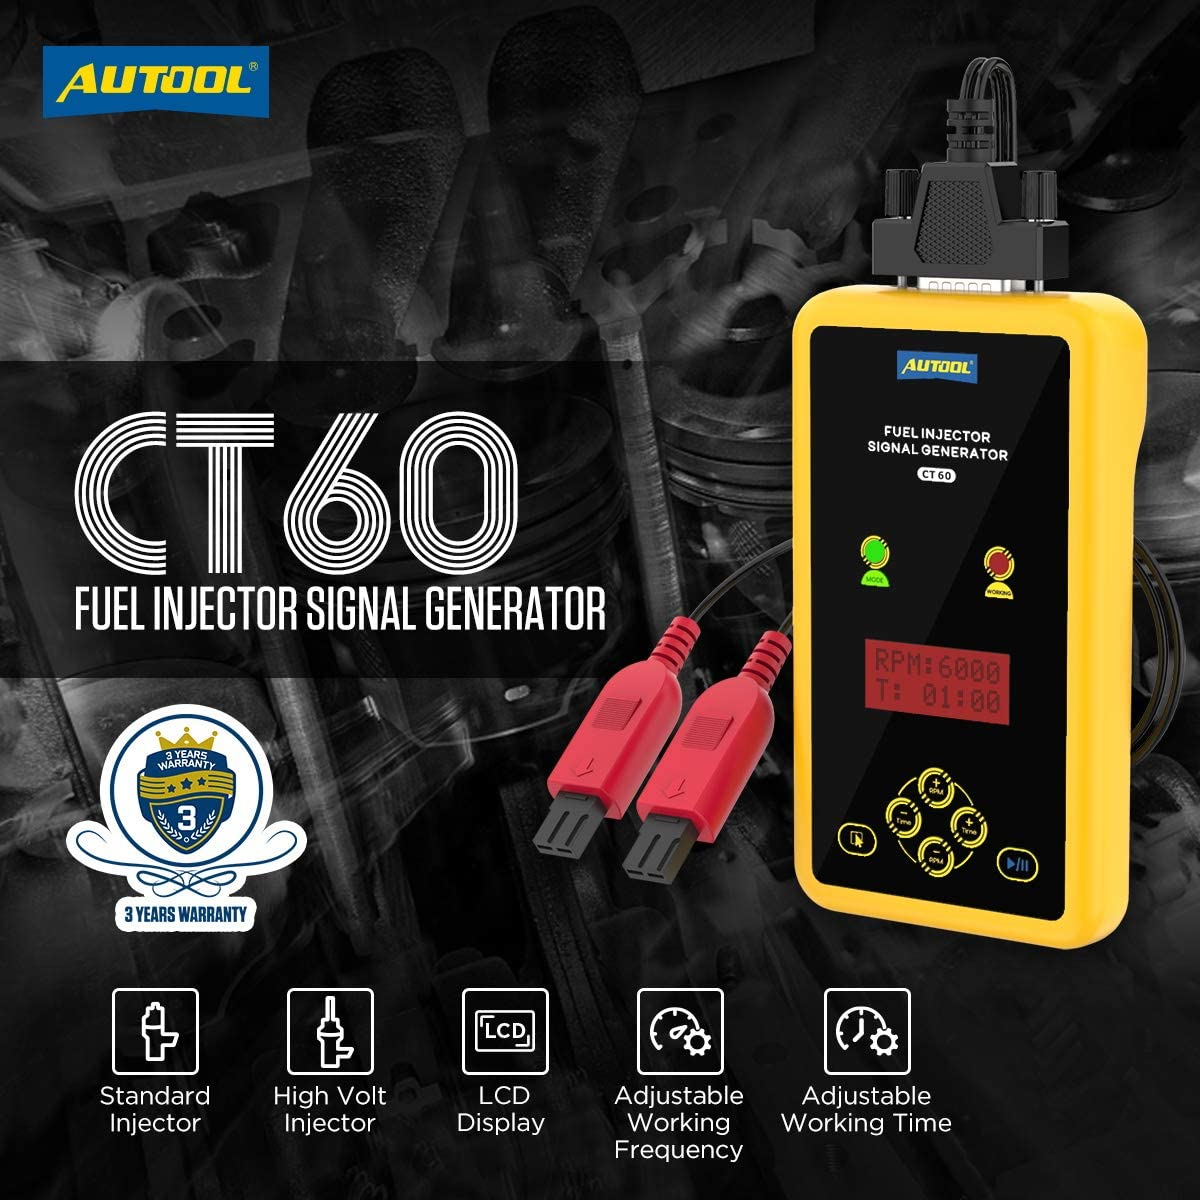 AUTOOL CT60 Car Fuel Injector Signal Generator 12V Auto Fuel Injector Flush Cleaner Adapter Fuel System Cleaning Assistant with 2 Nozzles Support High Volt Diesel Injector